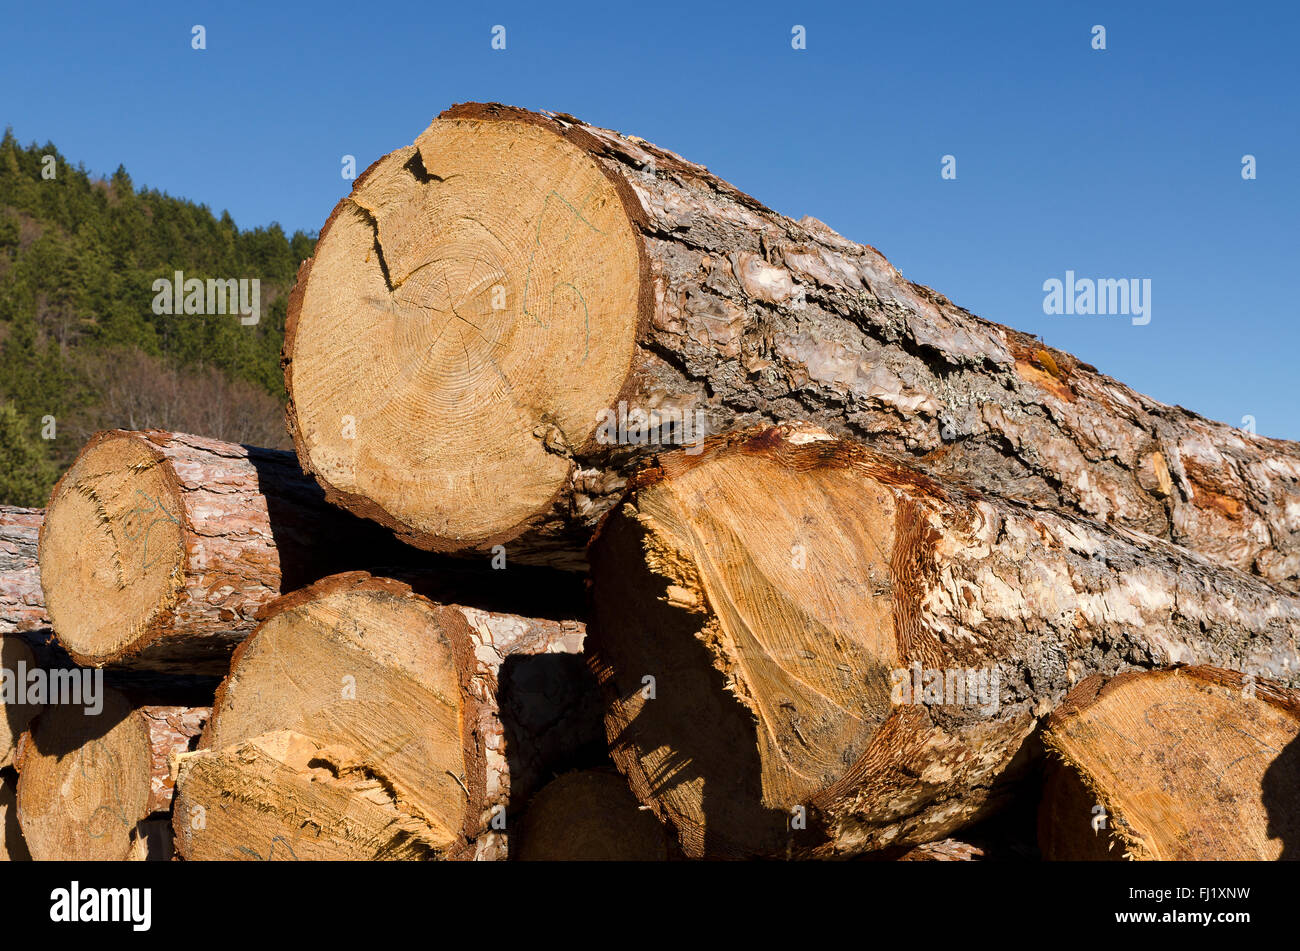 Stack of coniferous timber in the Rhodope Mountain - Stock Image